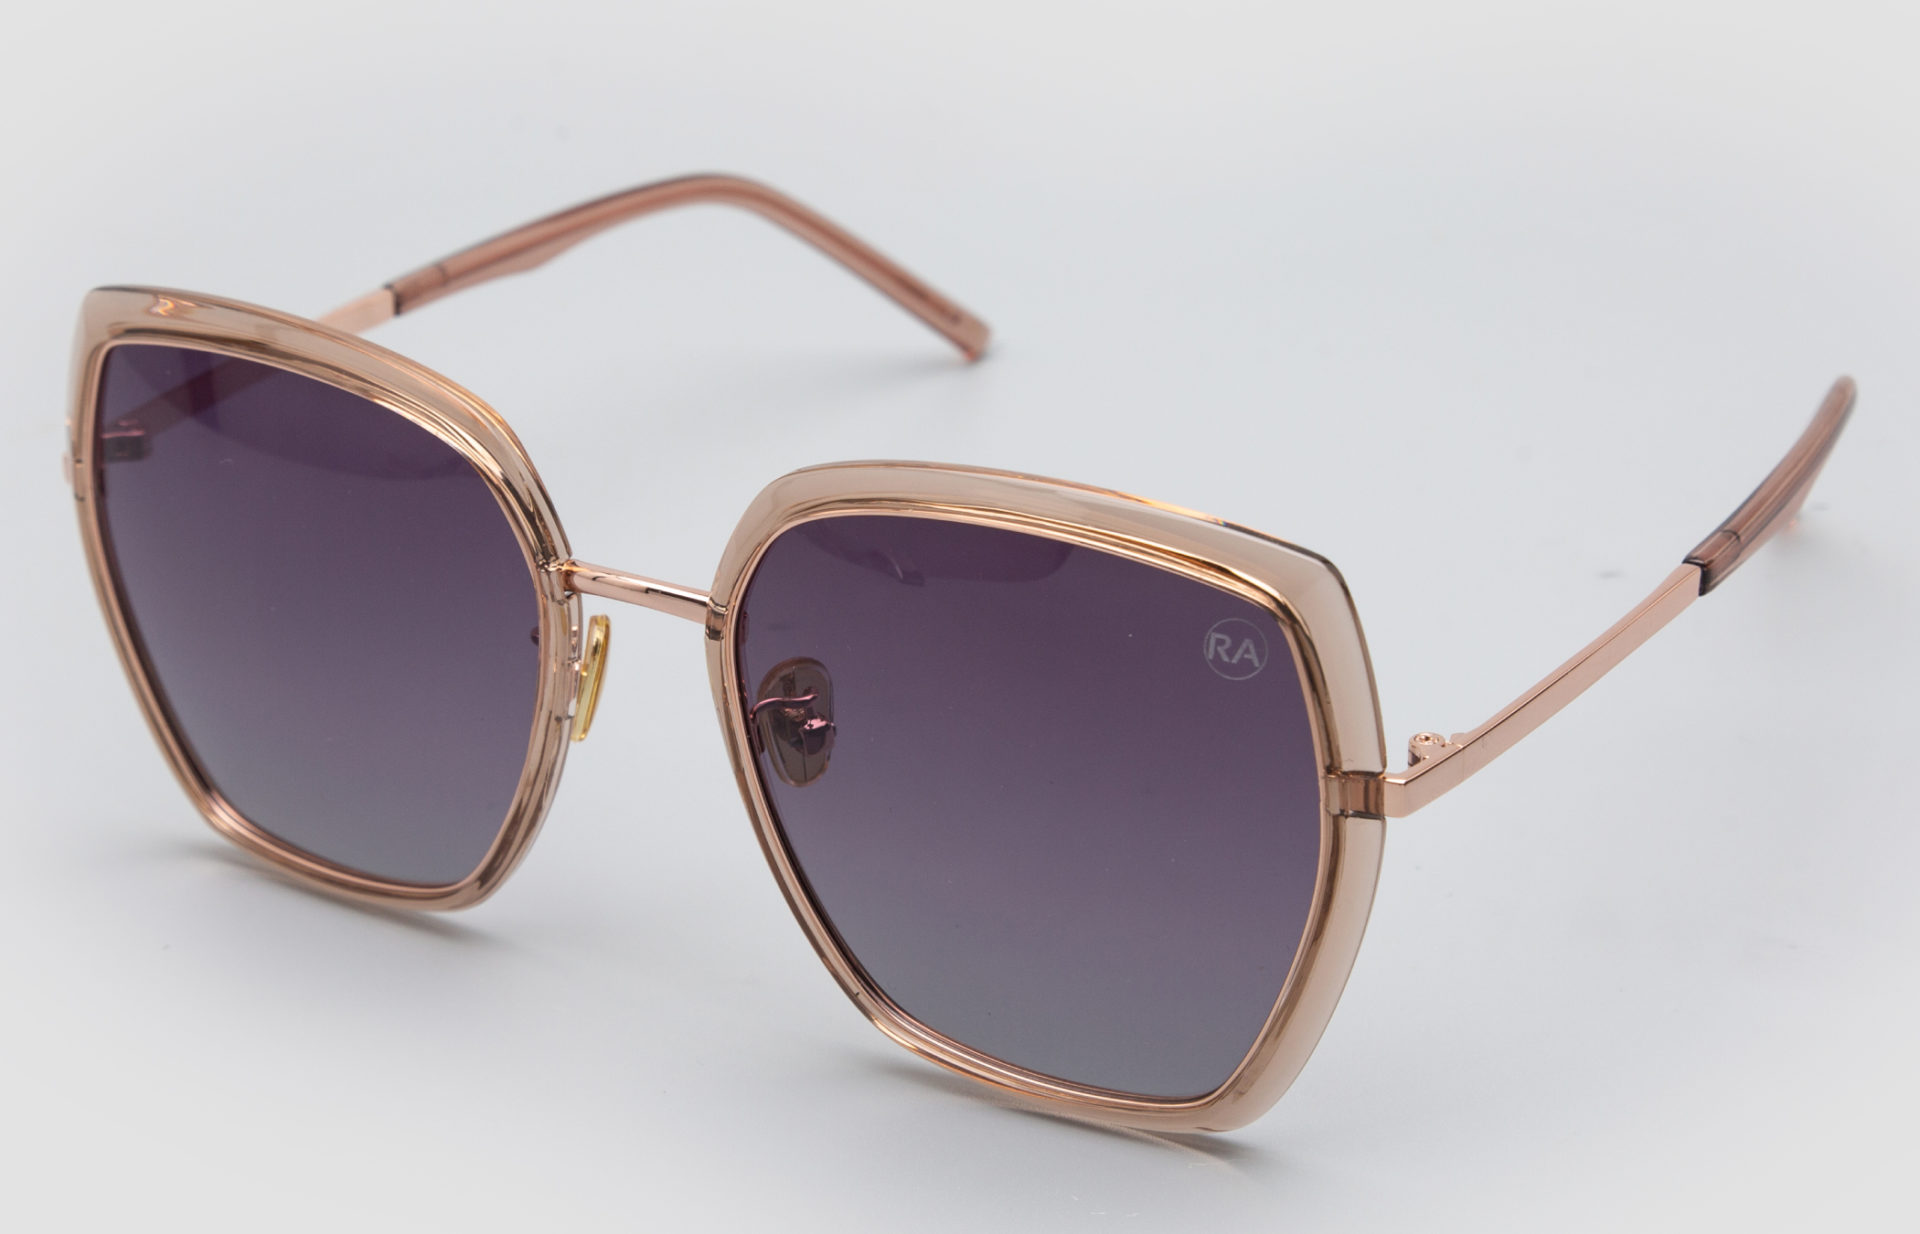 Radically Bold Sunglasses: OO Collection